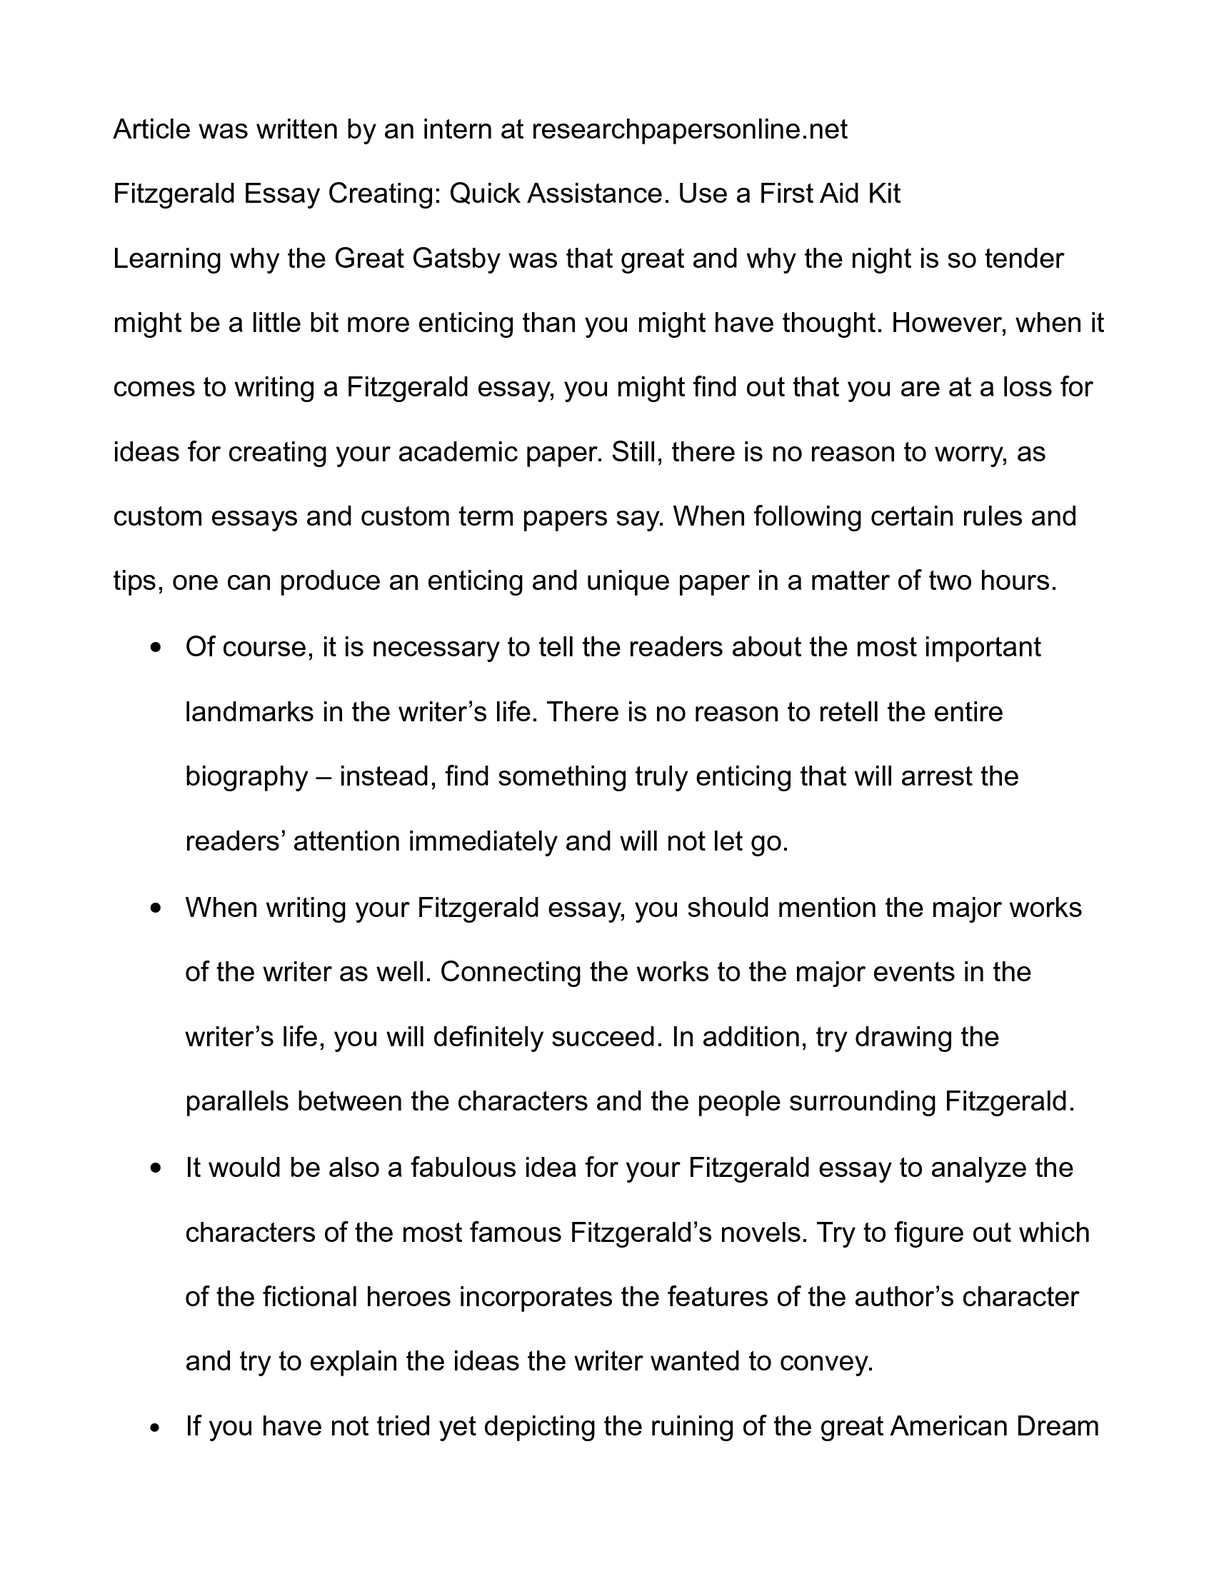 Calaméo - Fitzgerald Essay Creating: Quick Assistance. Use a First ...